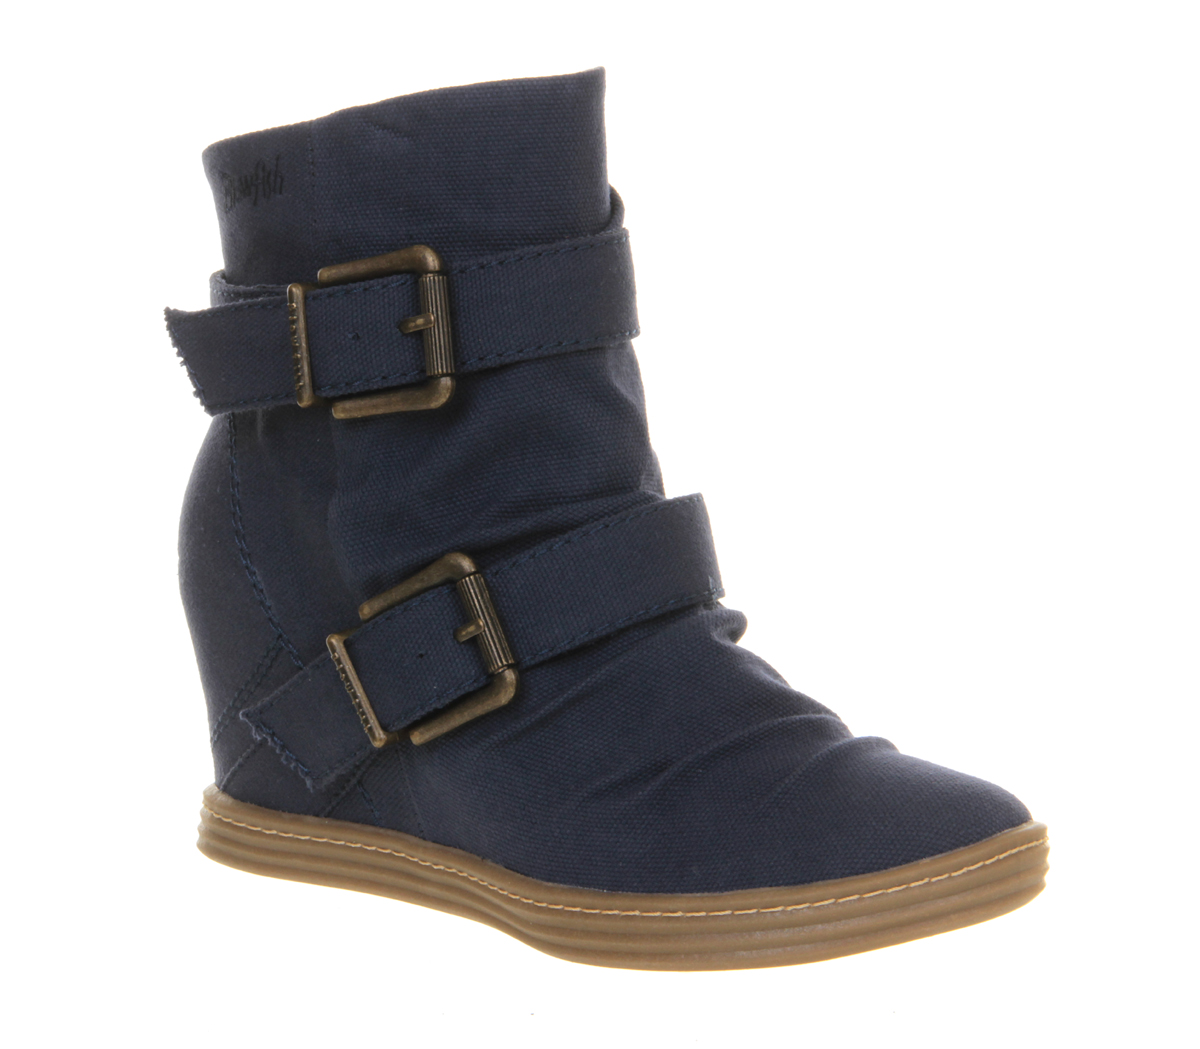 Womens-Blowfish-Tugo-Wedge-Sneaker-NAVY-CANVAS-Boots